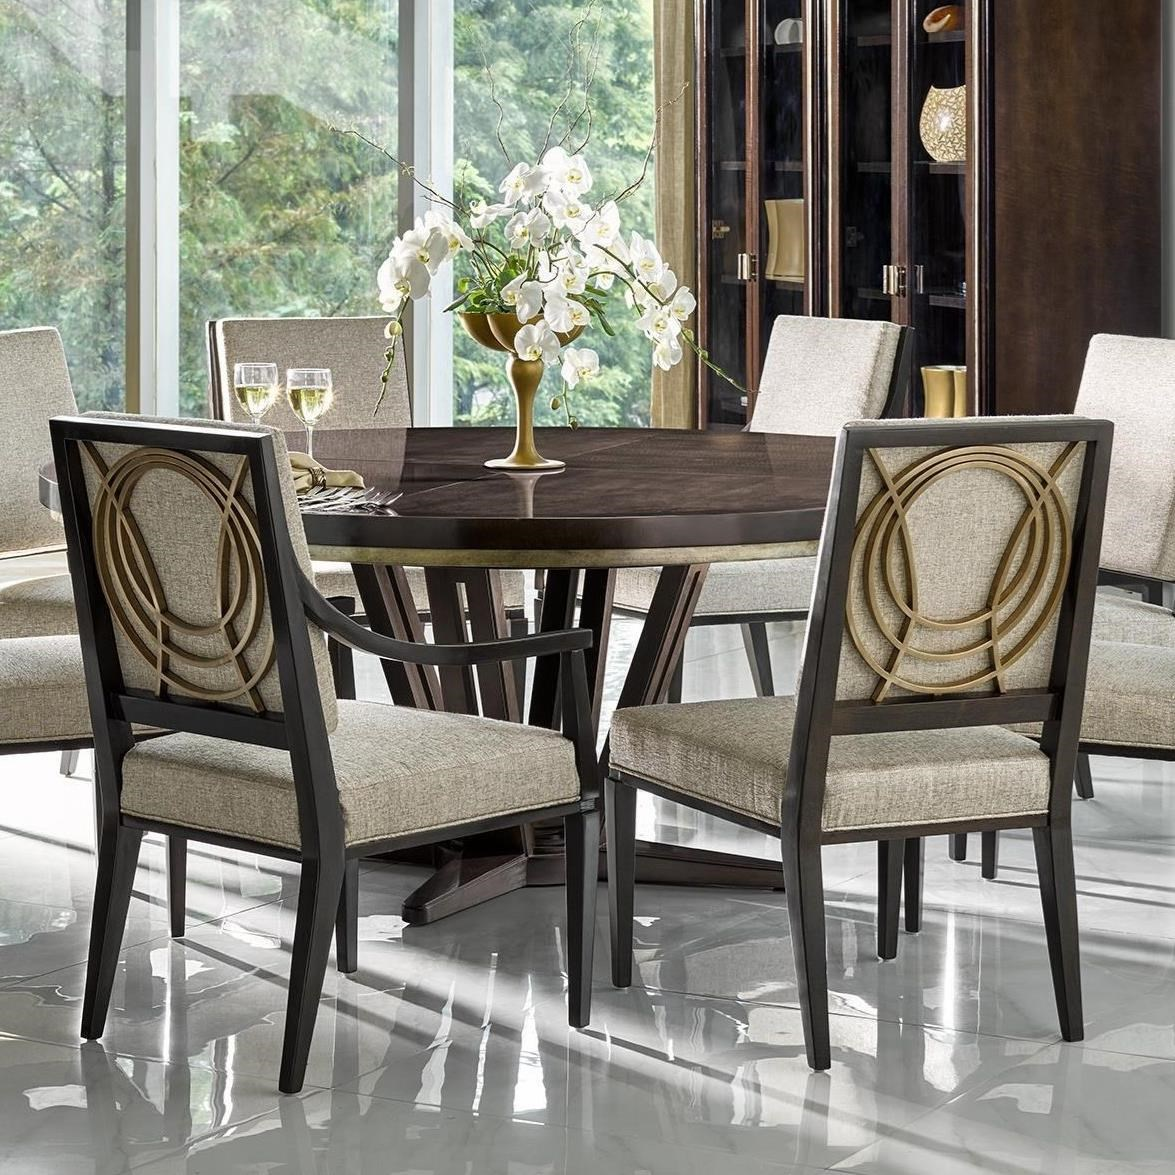 Le Cercle 72 Round Single Pedestal Dining Table With Lazy Susan By